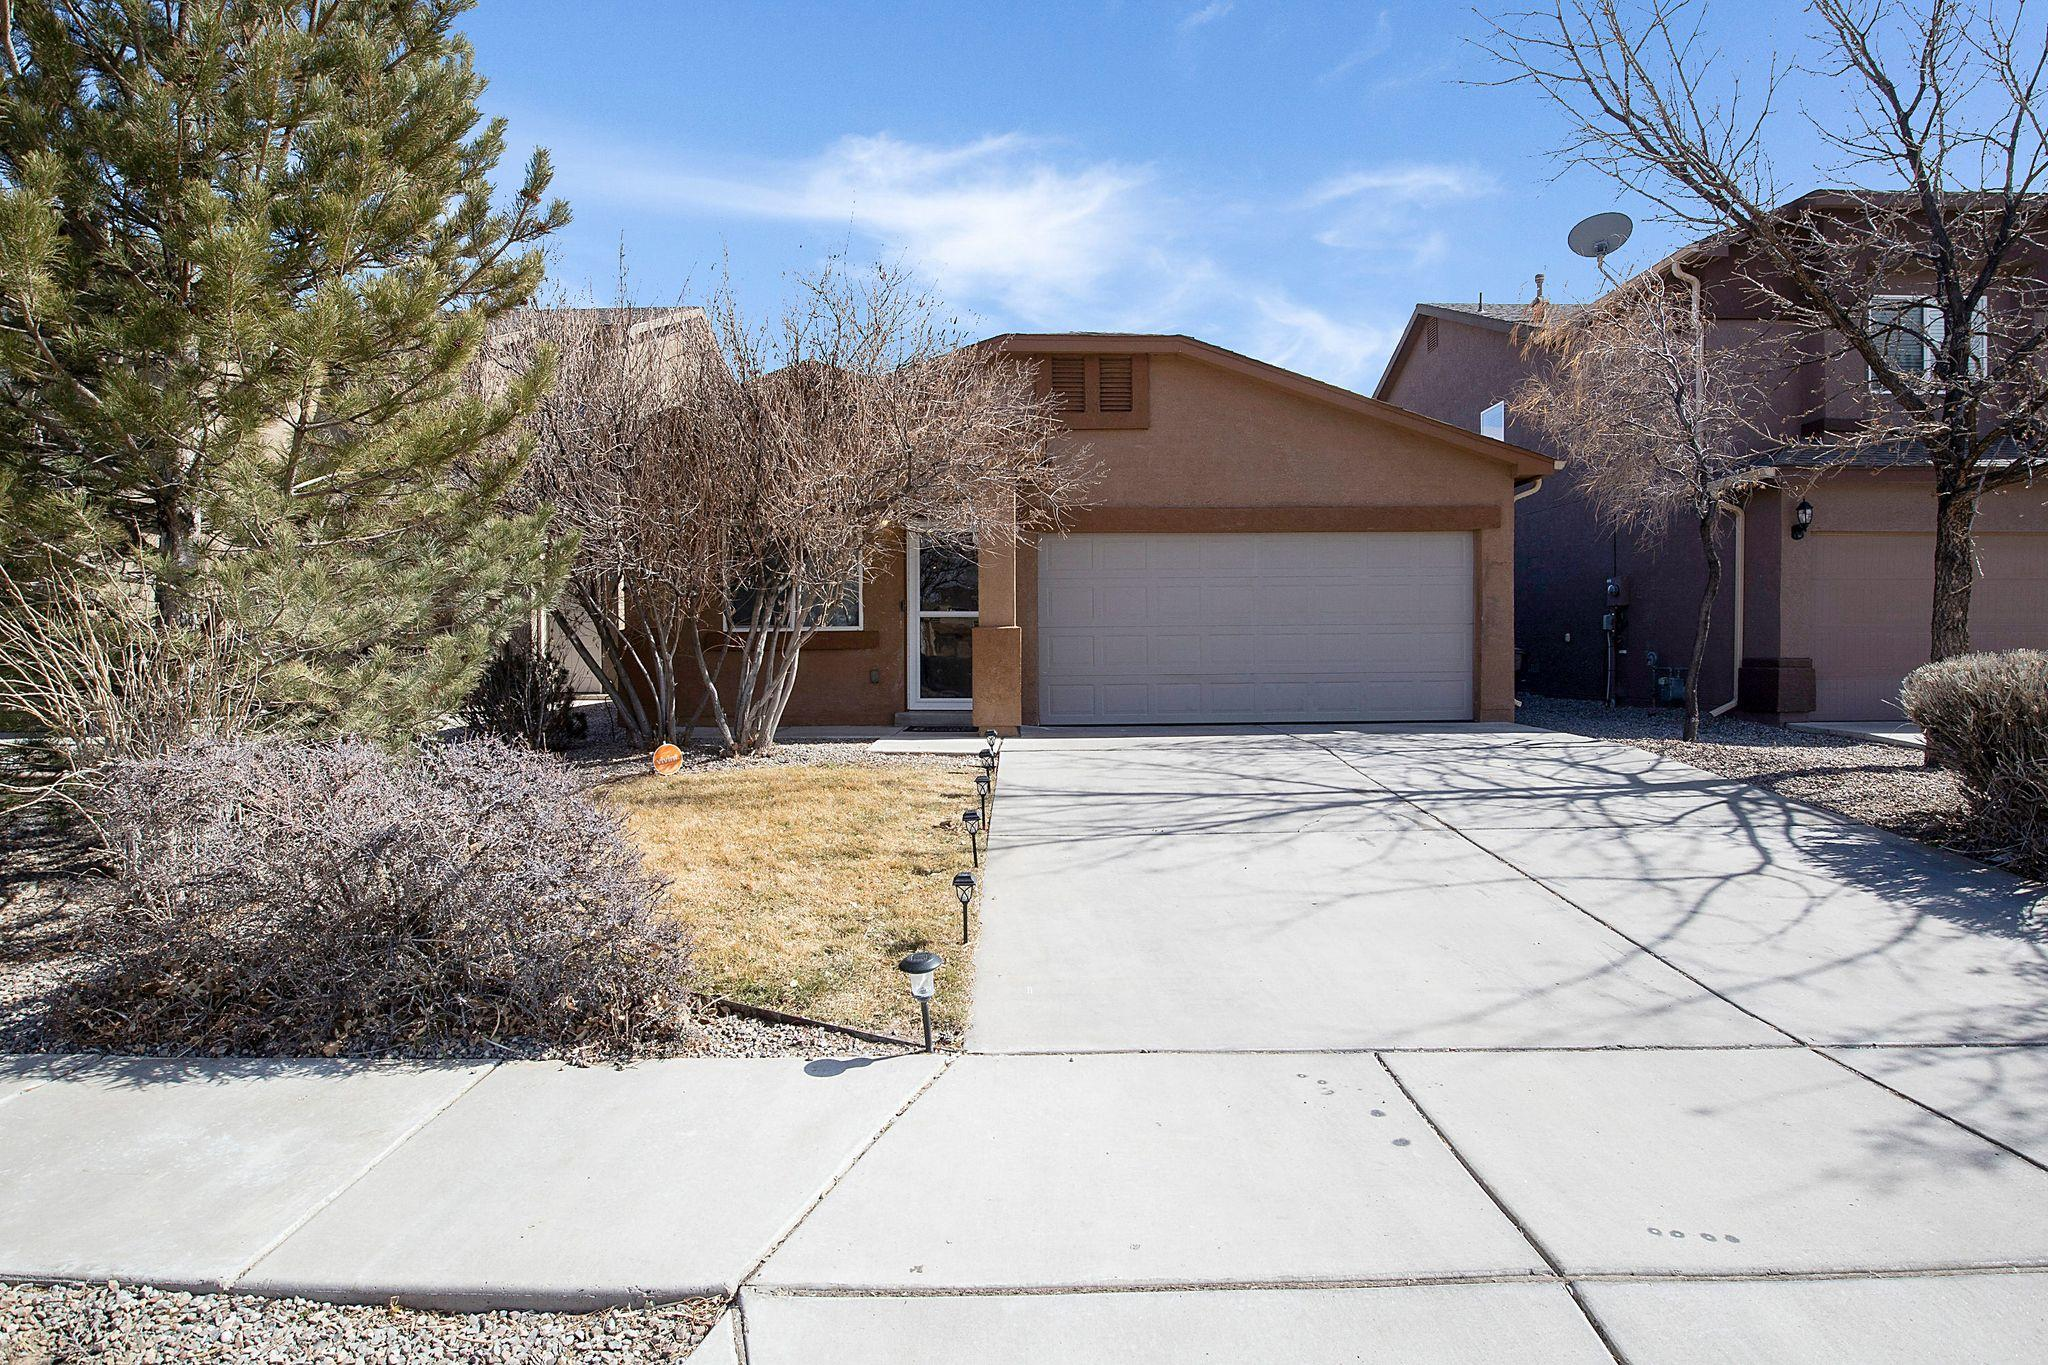 Don't miss out on this adorable home in the Northern Meadows neighborhood. This home is close to parks, playgrounds, basketball courts and trails. Great starter home with a large backyard.